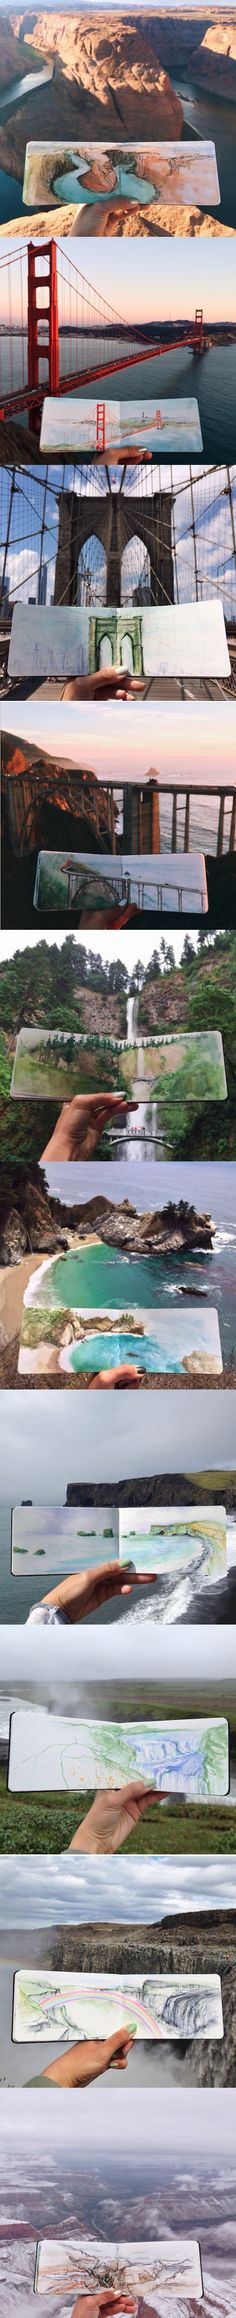 Art Teacher Paints Watercolor Landscapes Using Water Found at Her Destinations     Hannah Jesus Koh does not bring ordinary tap water with her when she creates watercolor paintings of her stunning surroundings. Using liquid straight from the environment that she wants to portray, the high school art teacher paints remarkable landscapes within the confines of her journal.